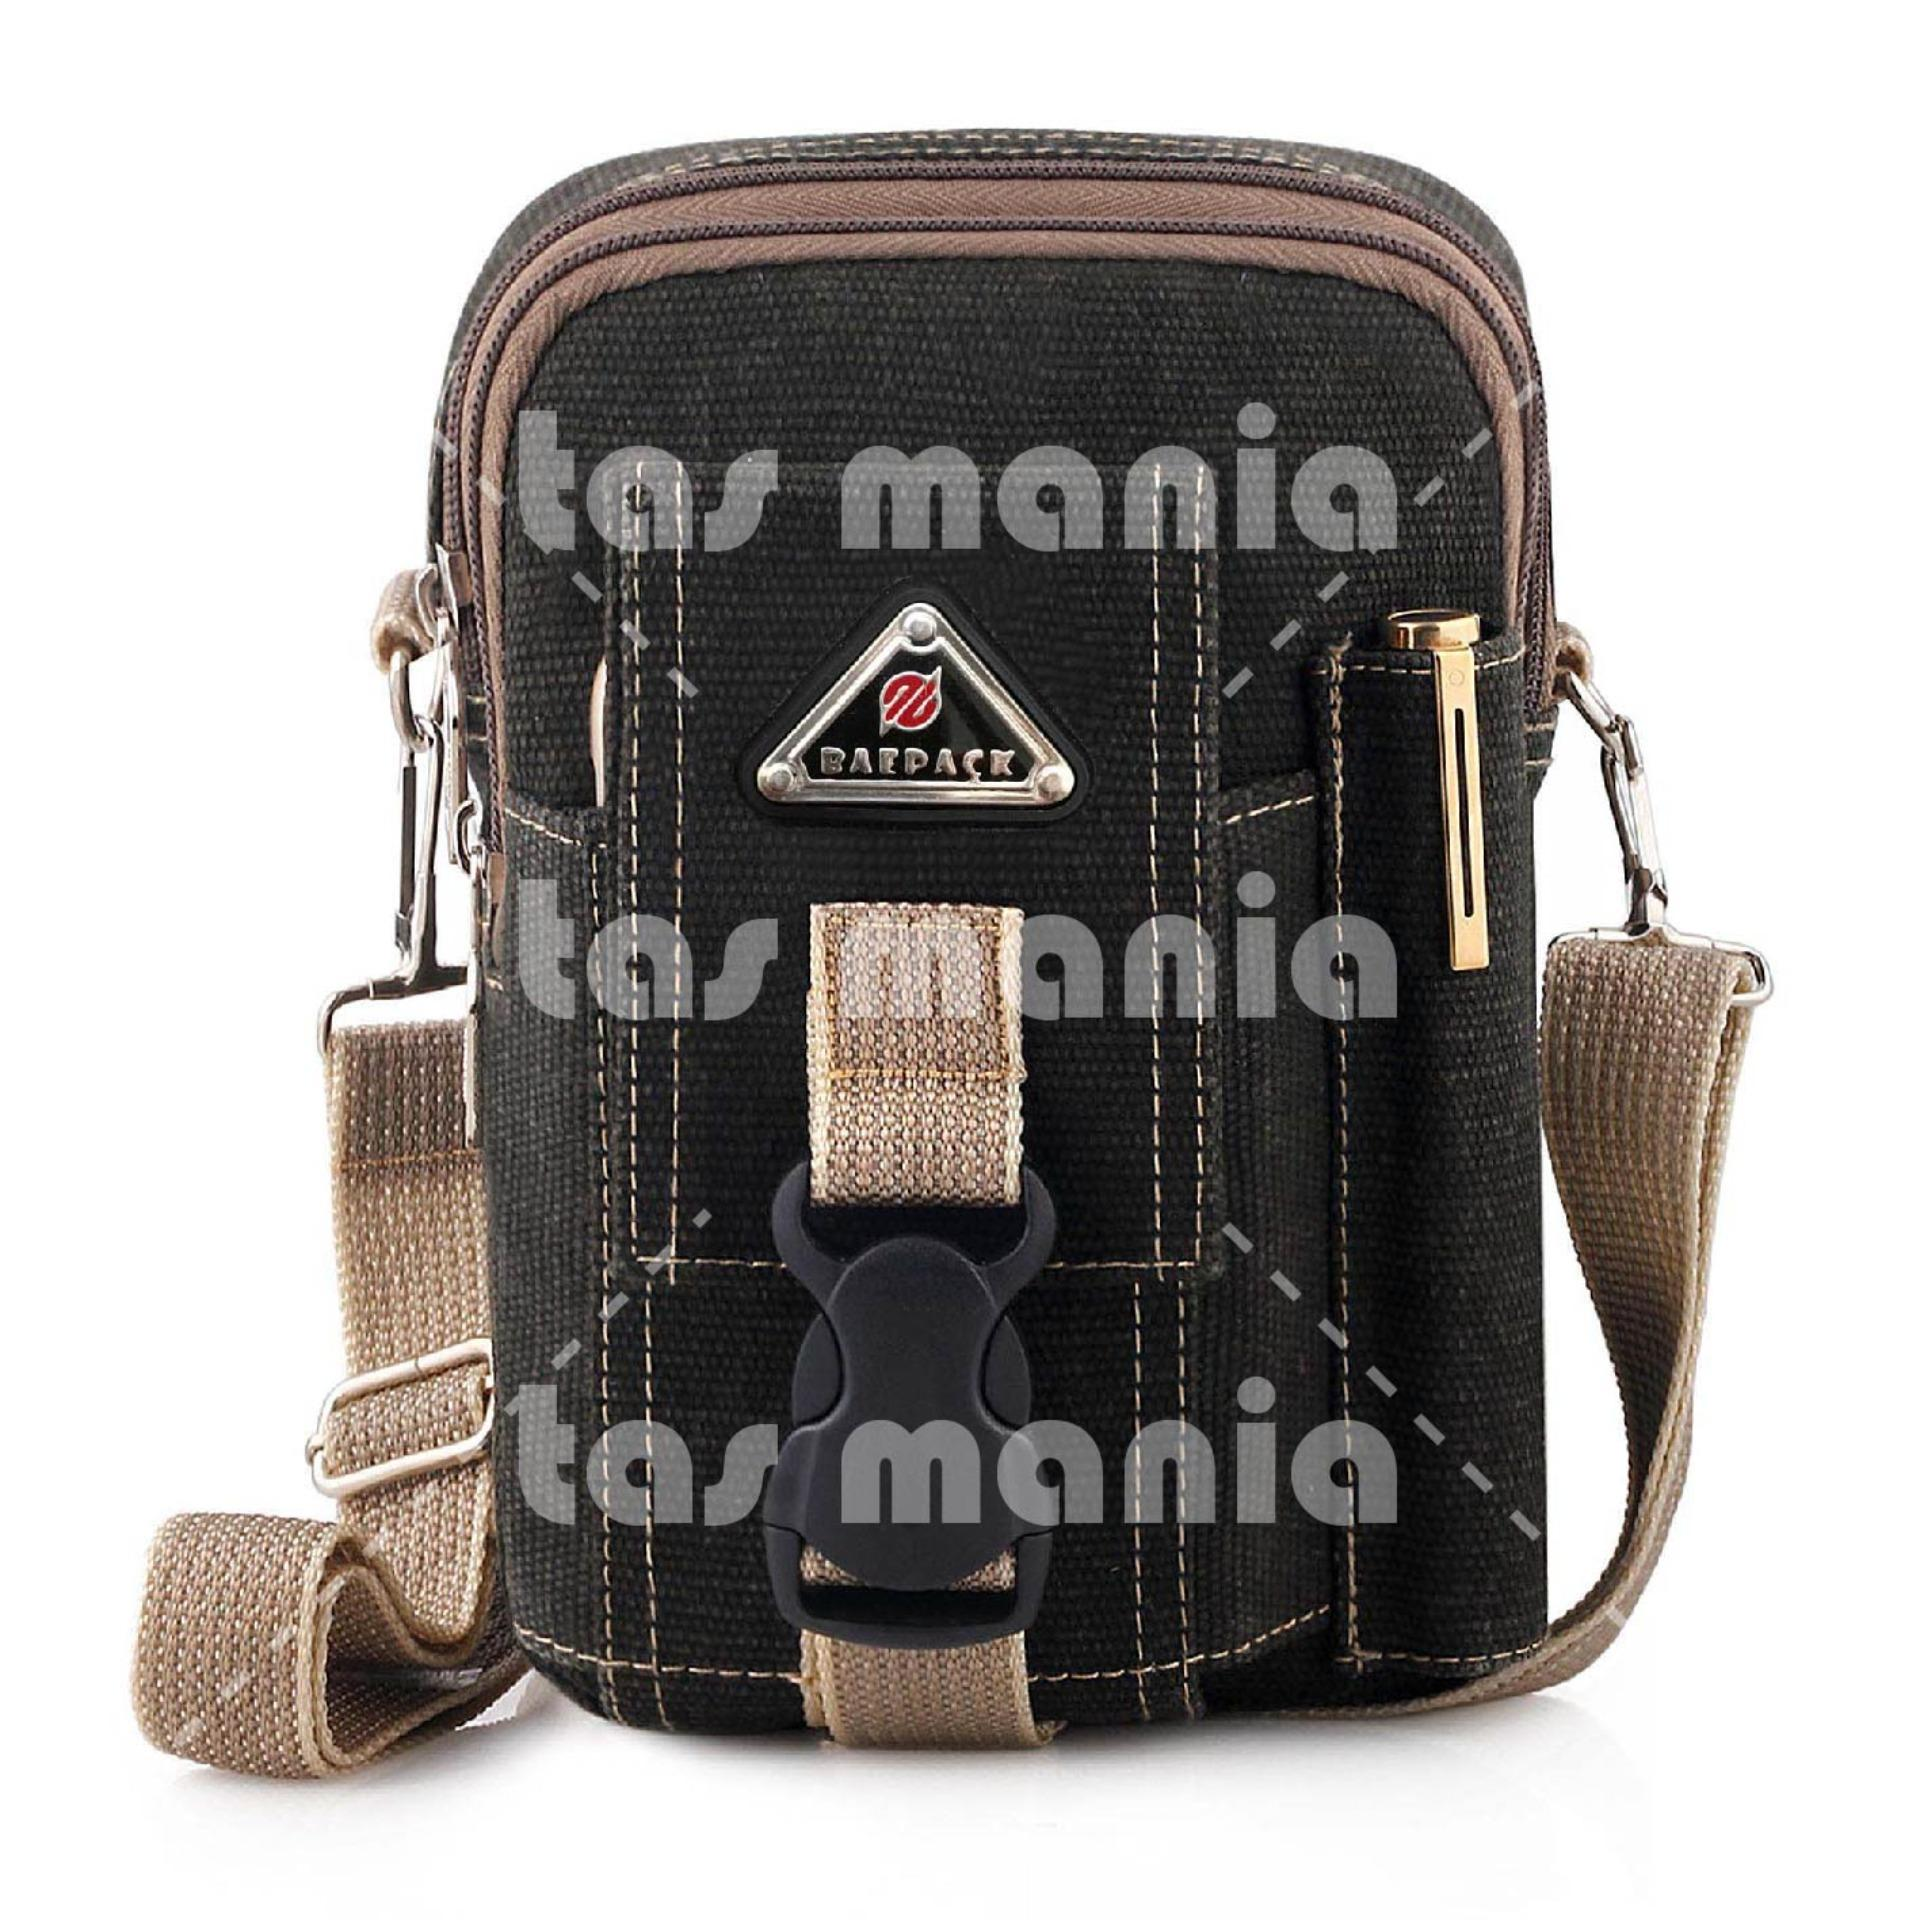 Kelebihan Tas Selempang Baepack Pinggang Pria Army Tactical Mini Digger Triangle Molle Canvas Waist Small Bag Military Dark Grey